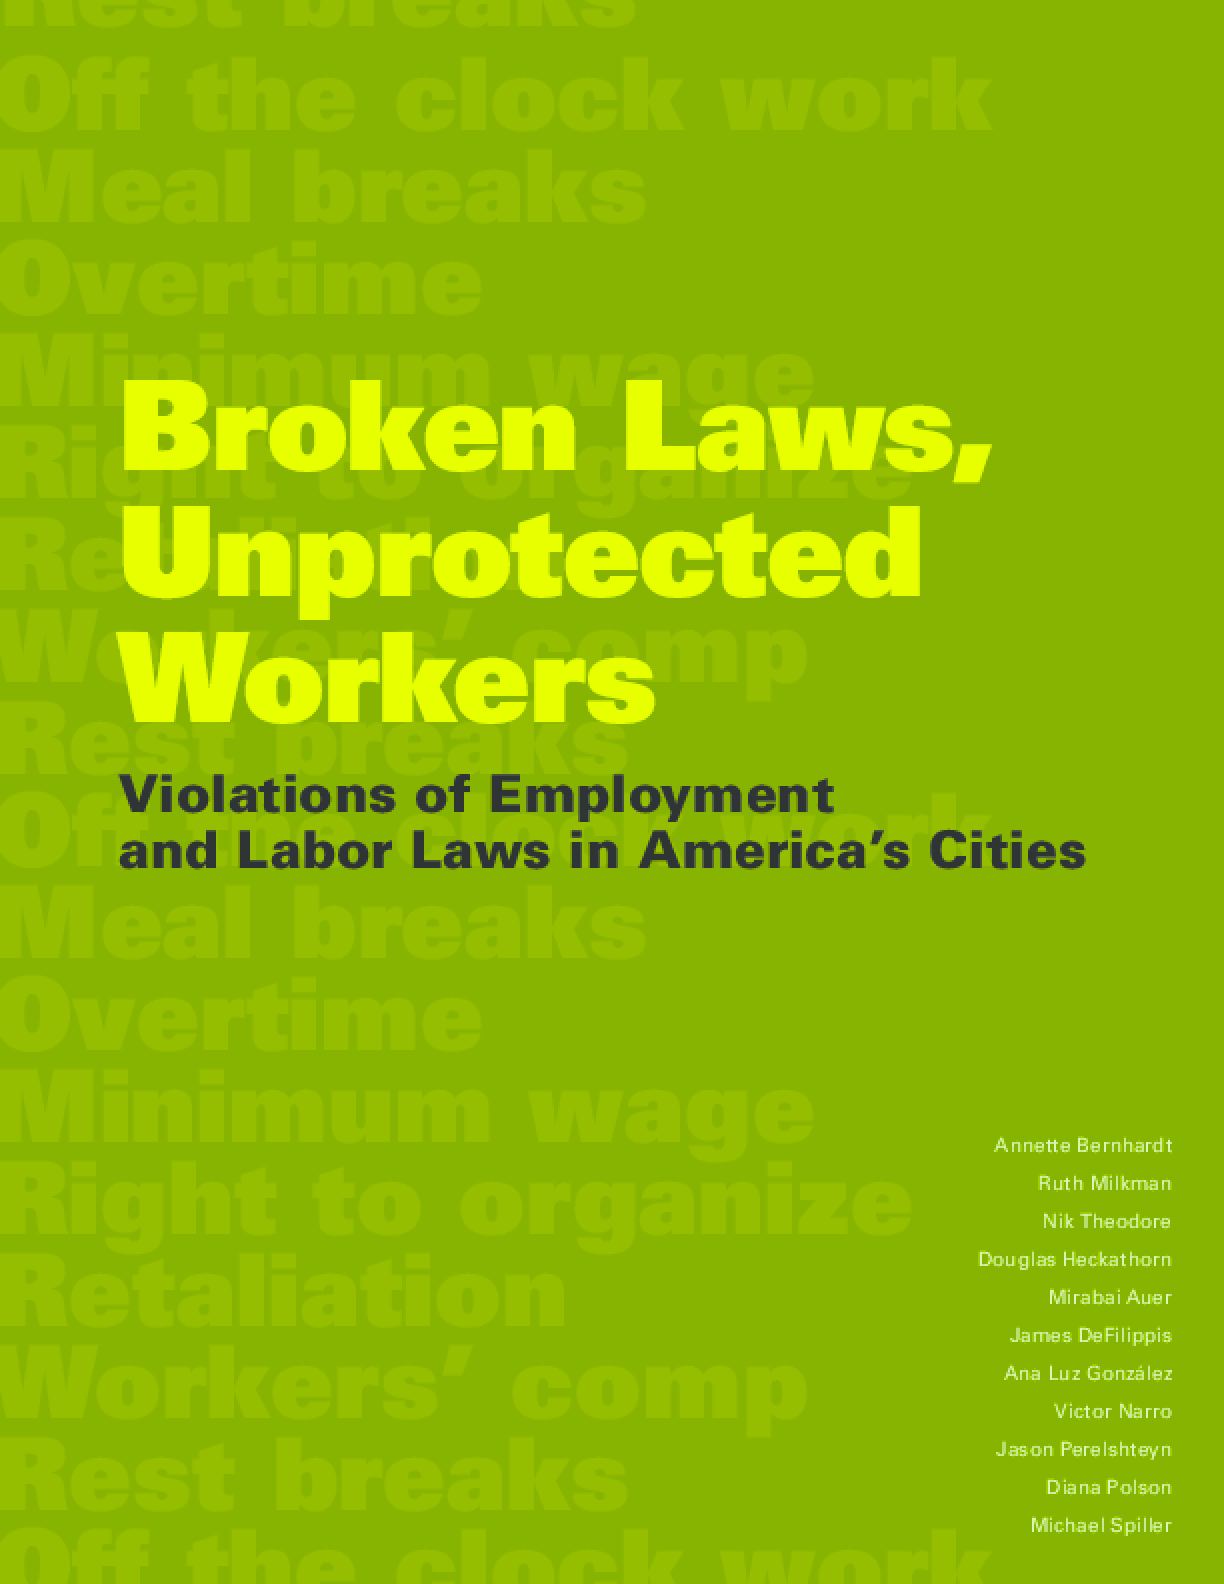 Broken Laws, Unprotected Workers: Violations of Employment and Labor Laws in America's Cities